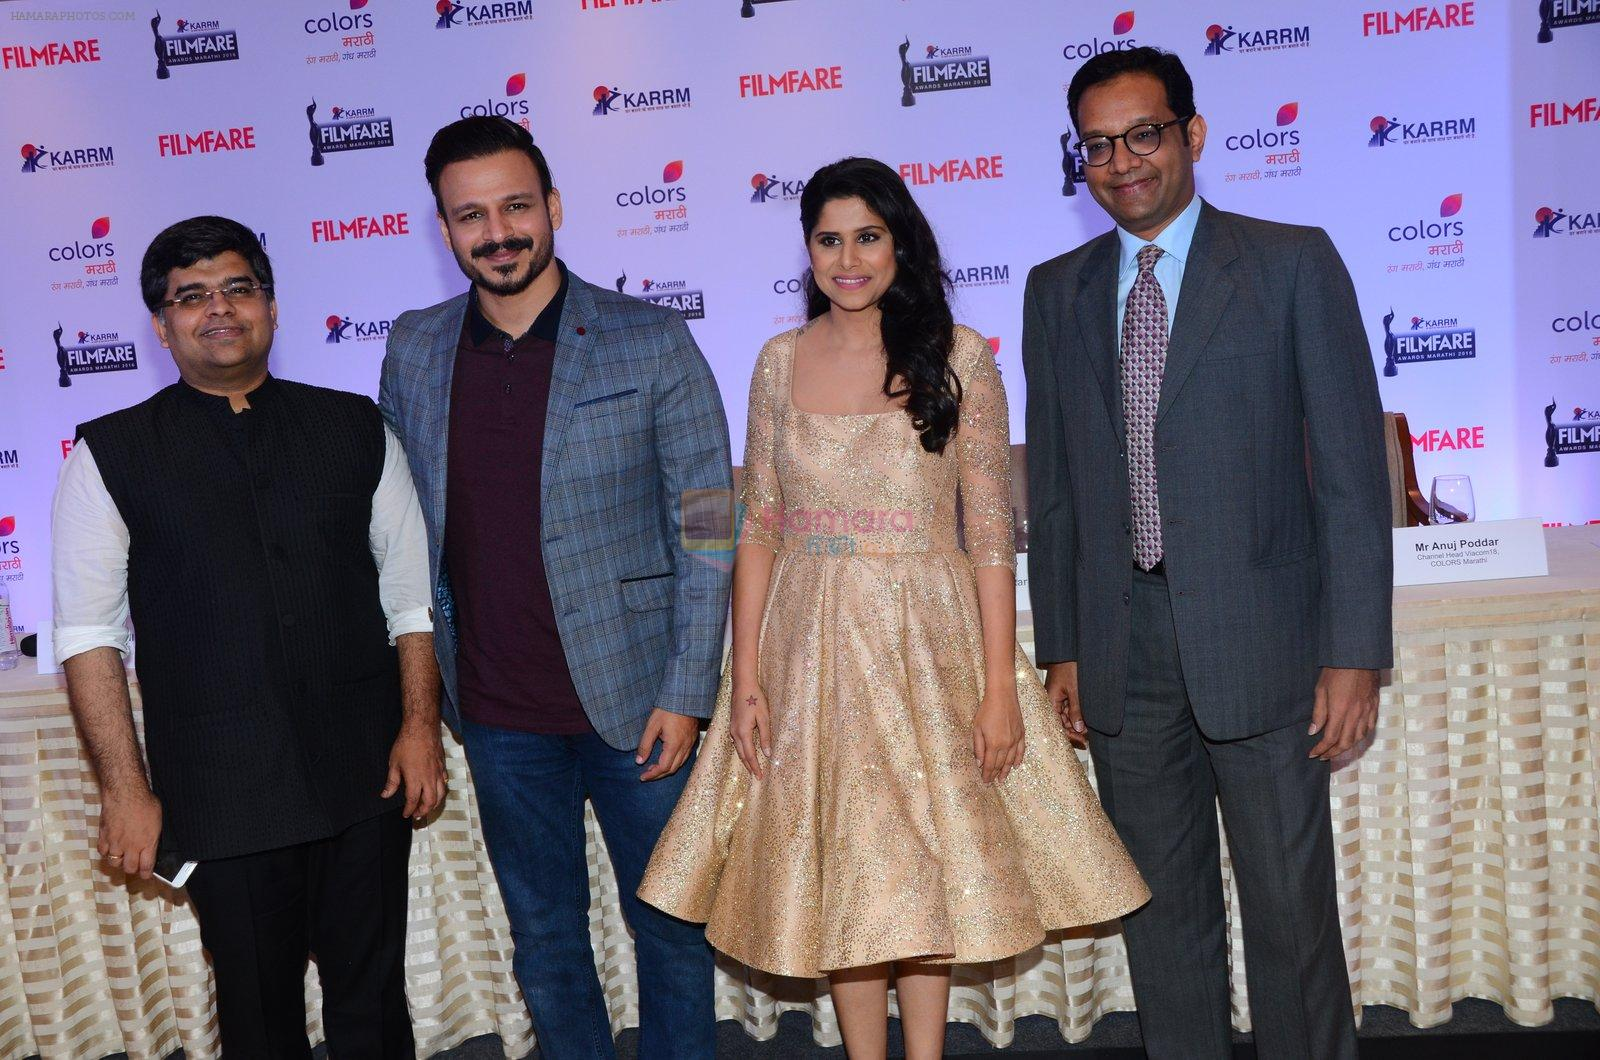 Vivek Oberoi, Sai Tamhankar at Marathi Filmfare press meet on 16th Nov 2016